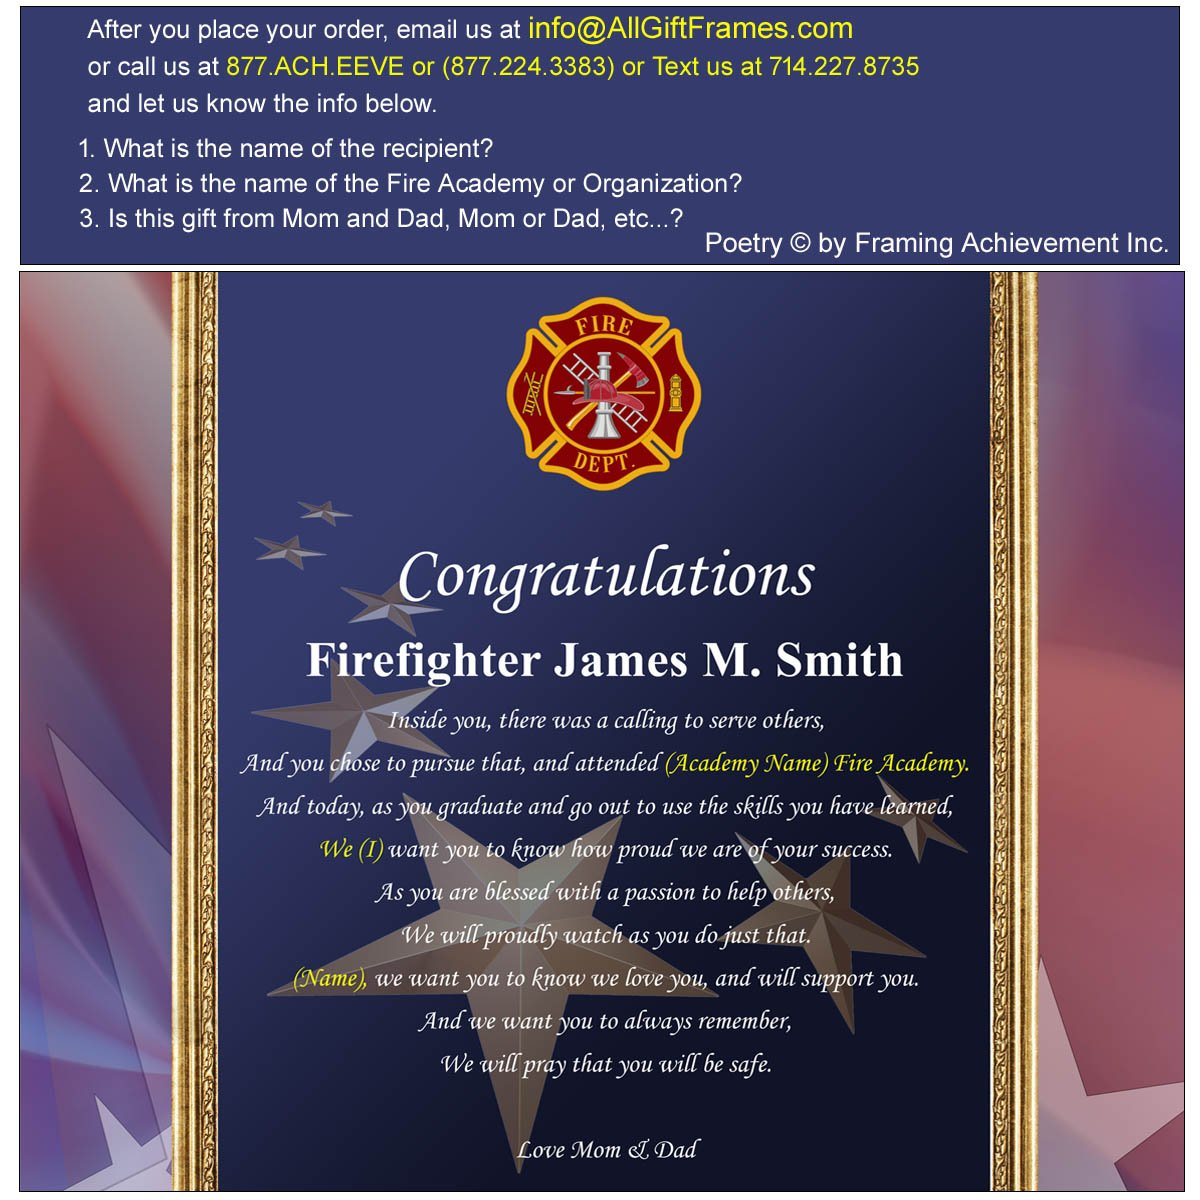 amazon com personalized fire fighter academy graduation gift of amazon com personalized fire fighter academy graduation gift of poetry custom poetry wall plaque fireman graduation present firefighter gift